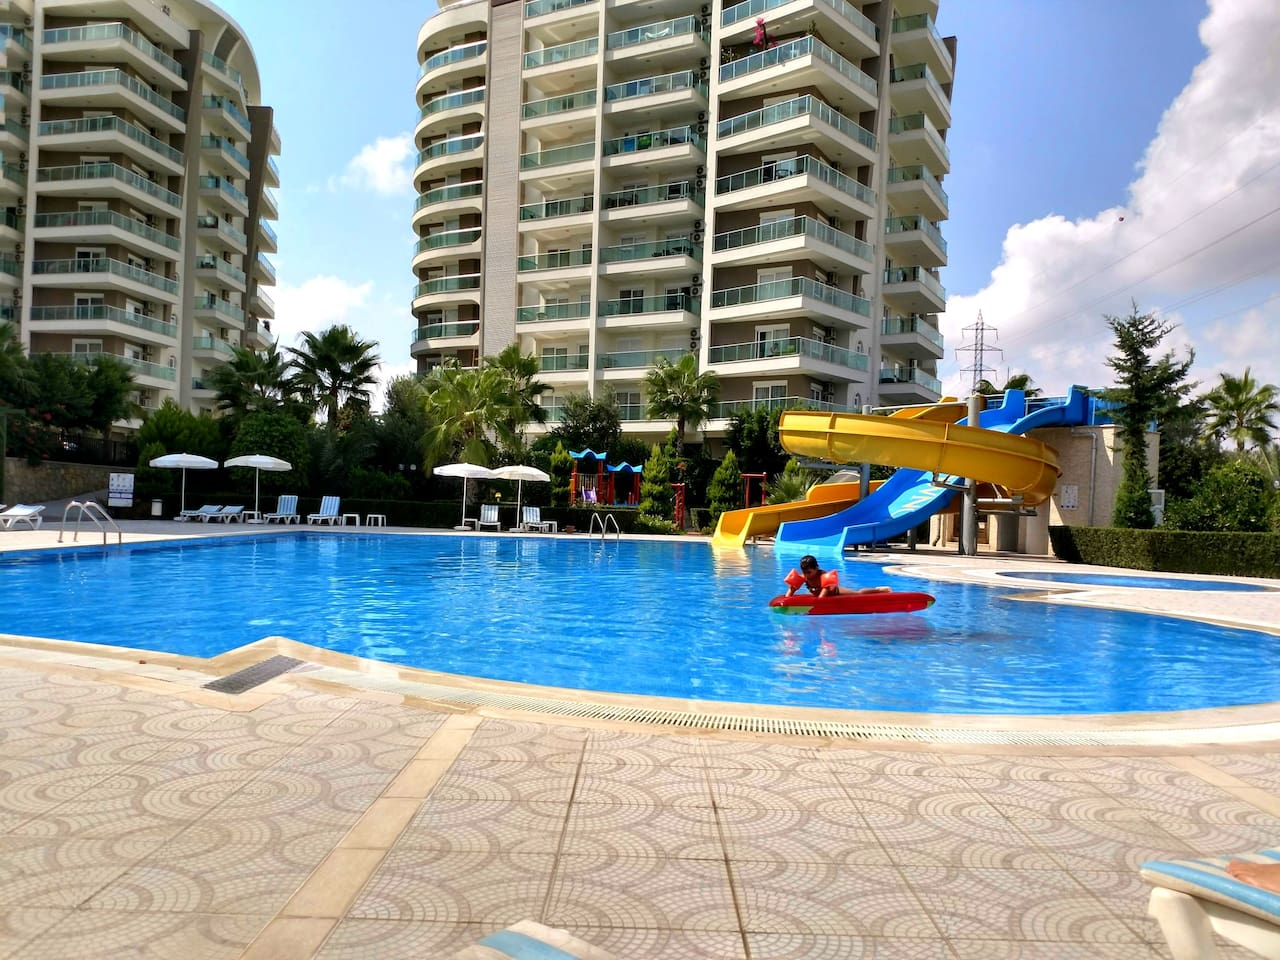 Large pool area with a shallow pool for children, two different waterslides and a playground on the side.